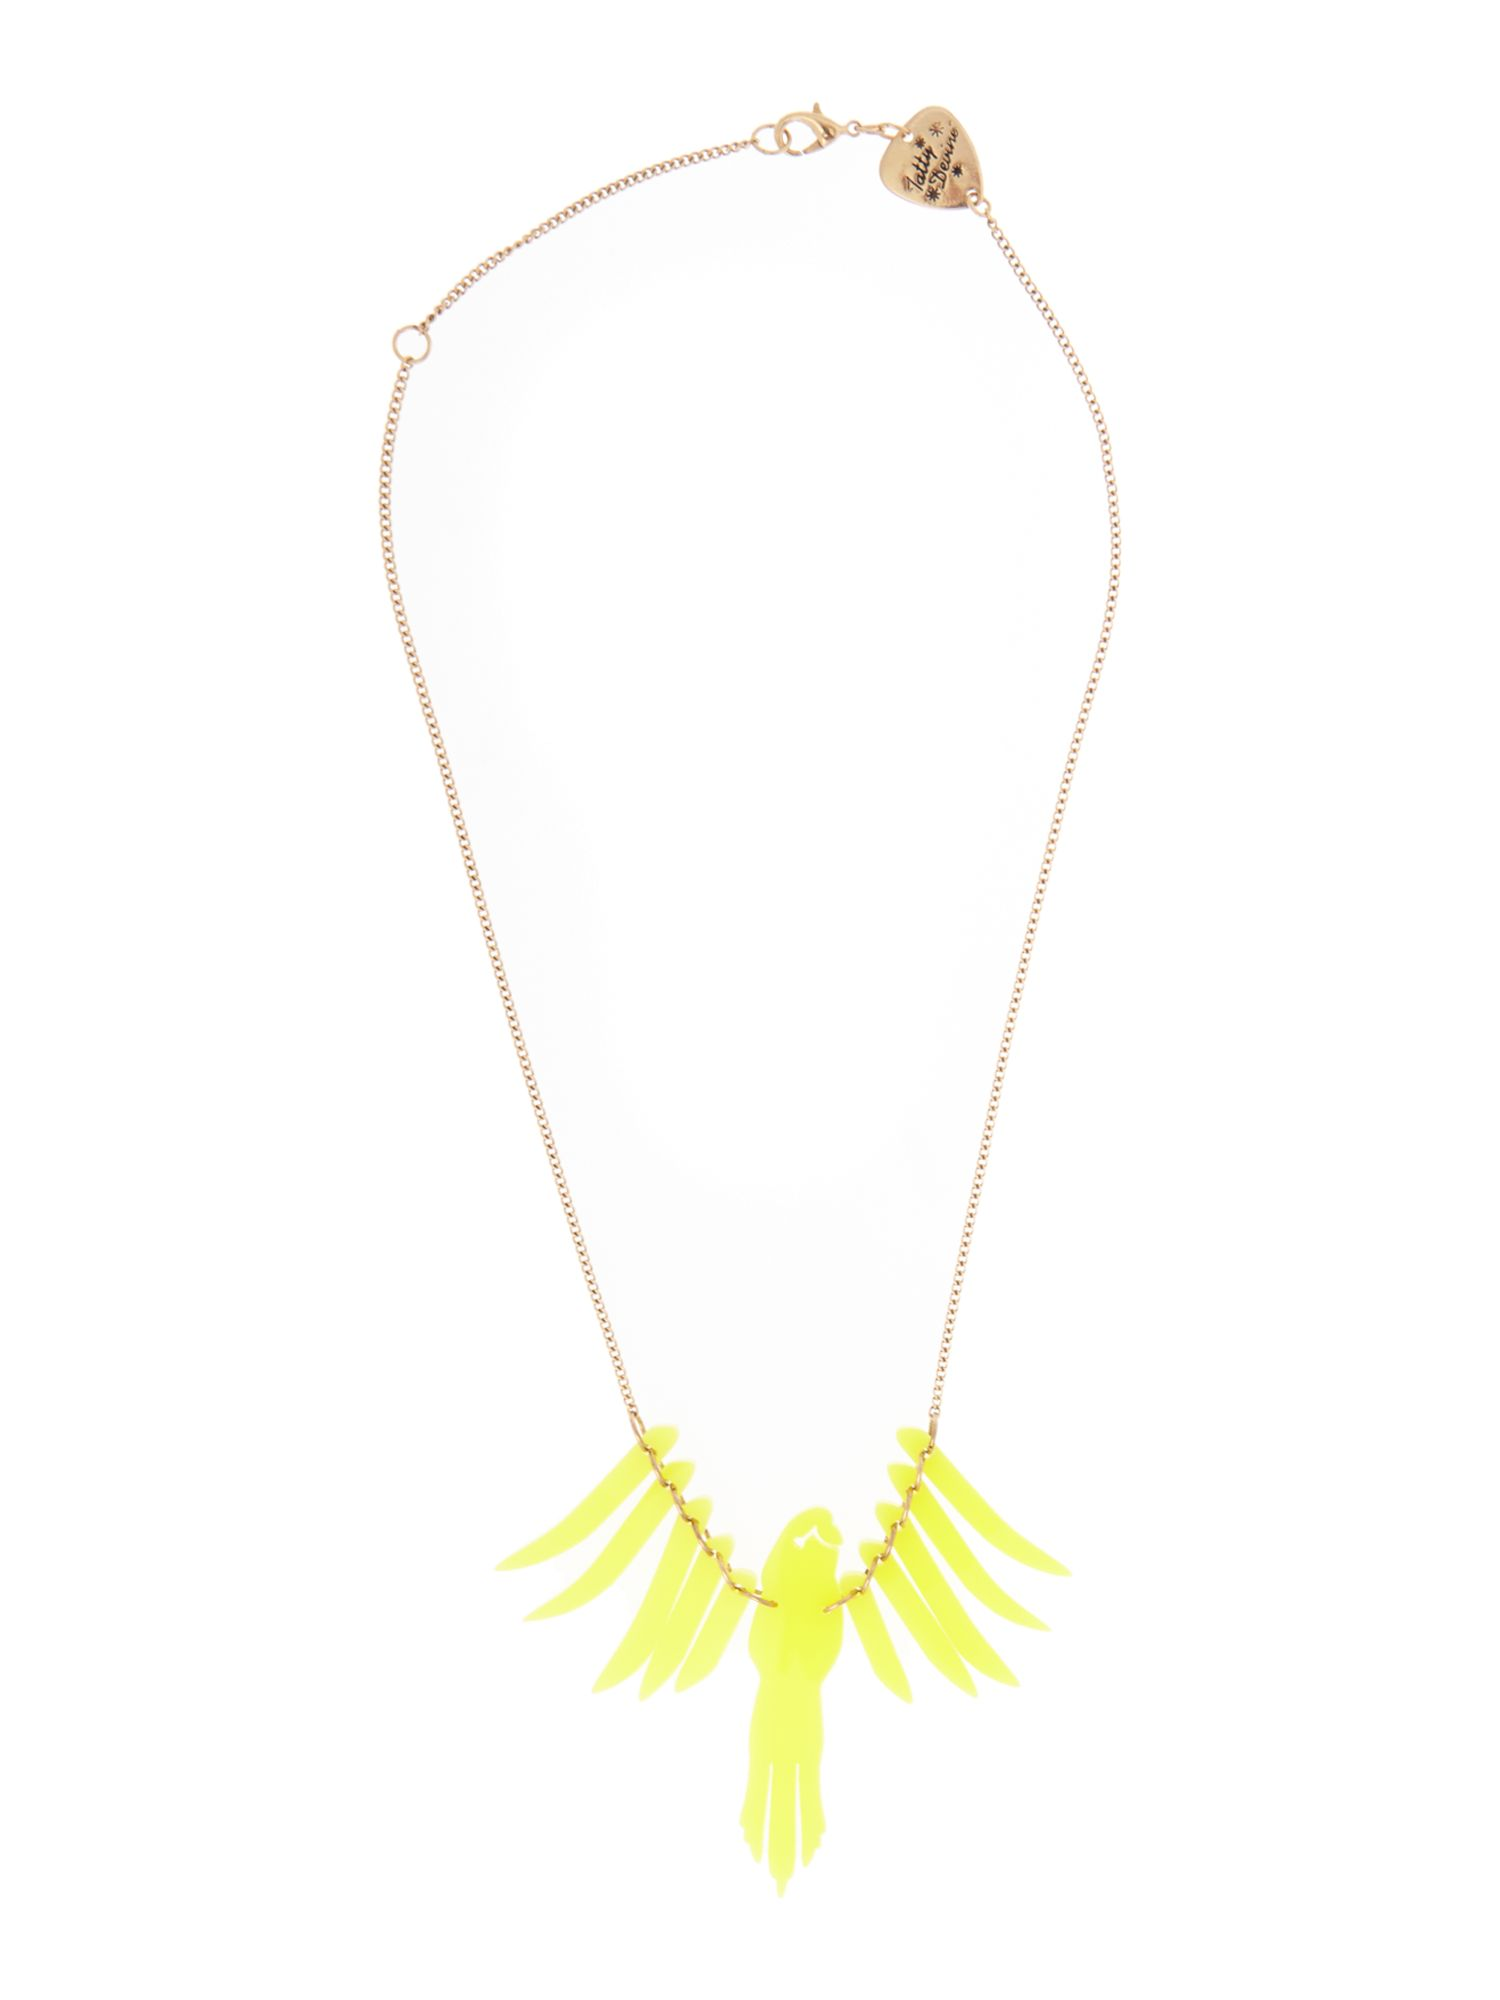 Parakeet smaller scale necklace chartreuse